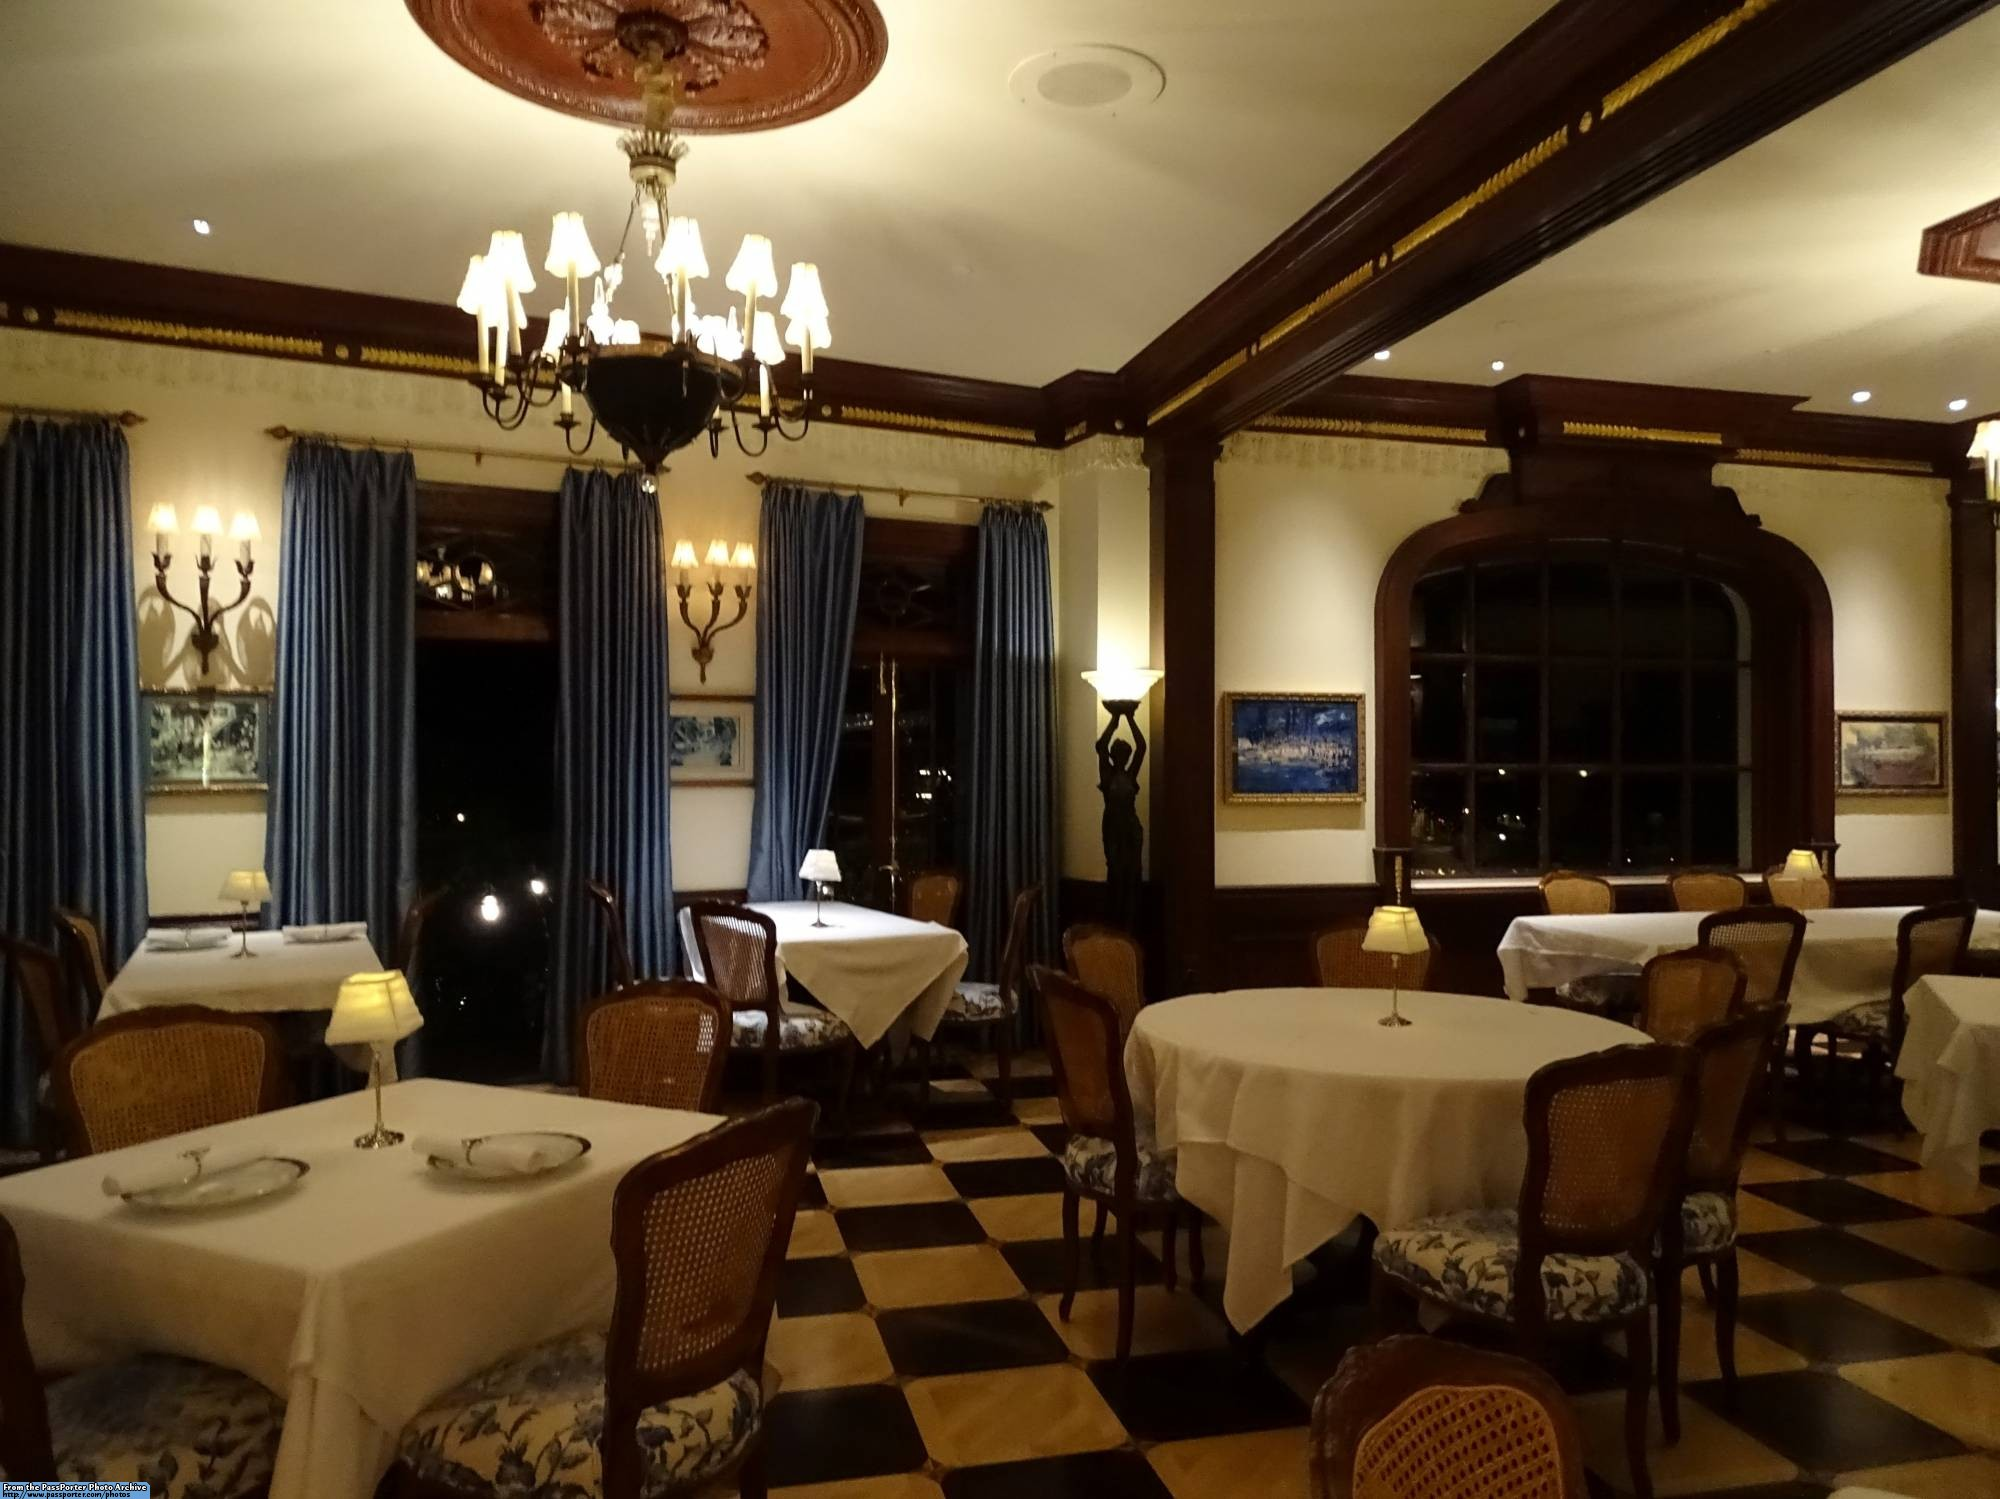 Get a peek into the exclusive private Club 33 at Disneyland | PassPorter.com